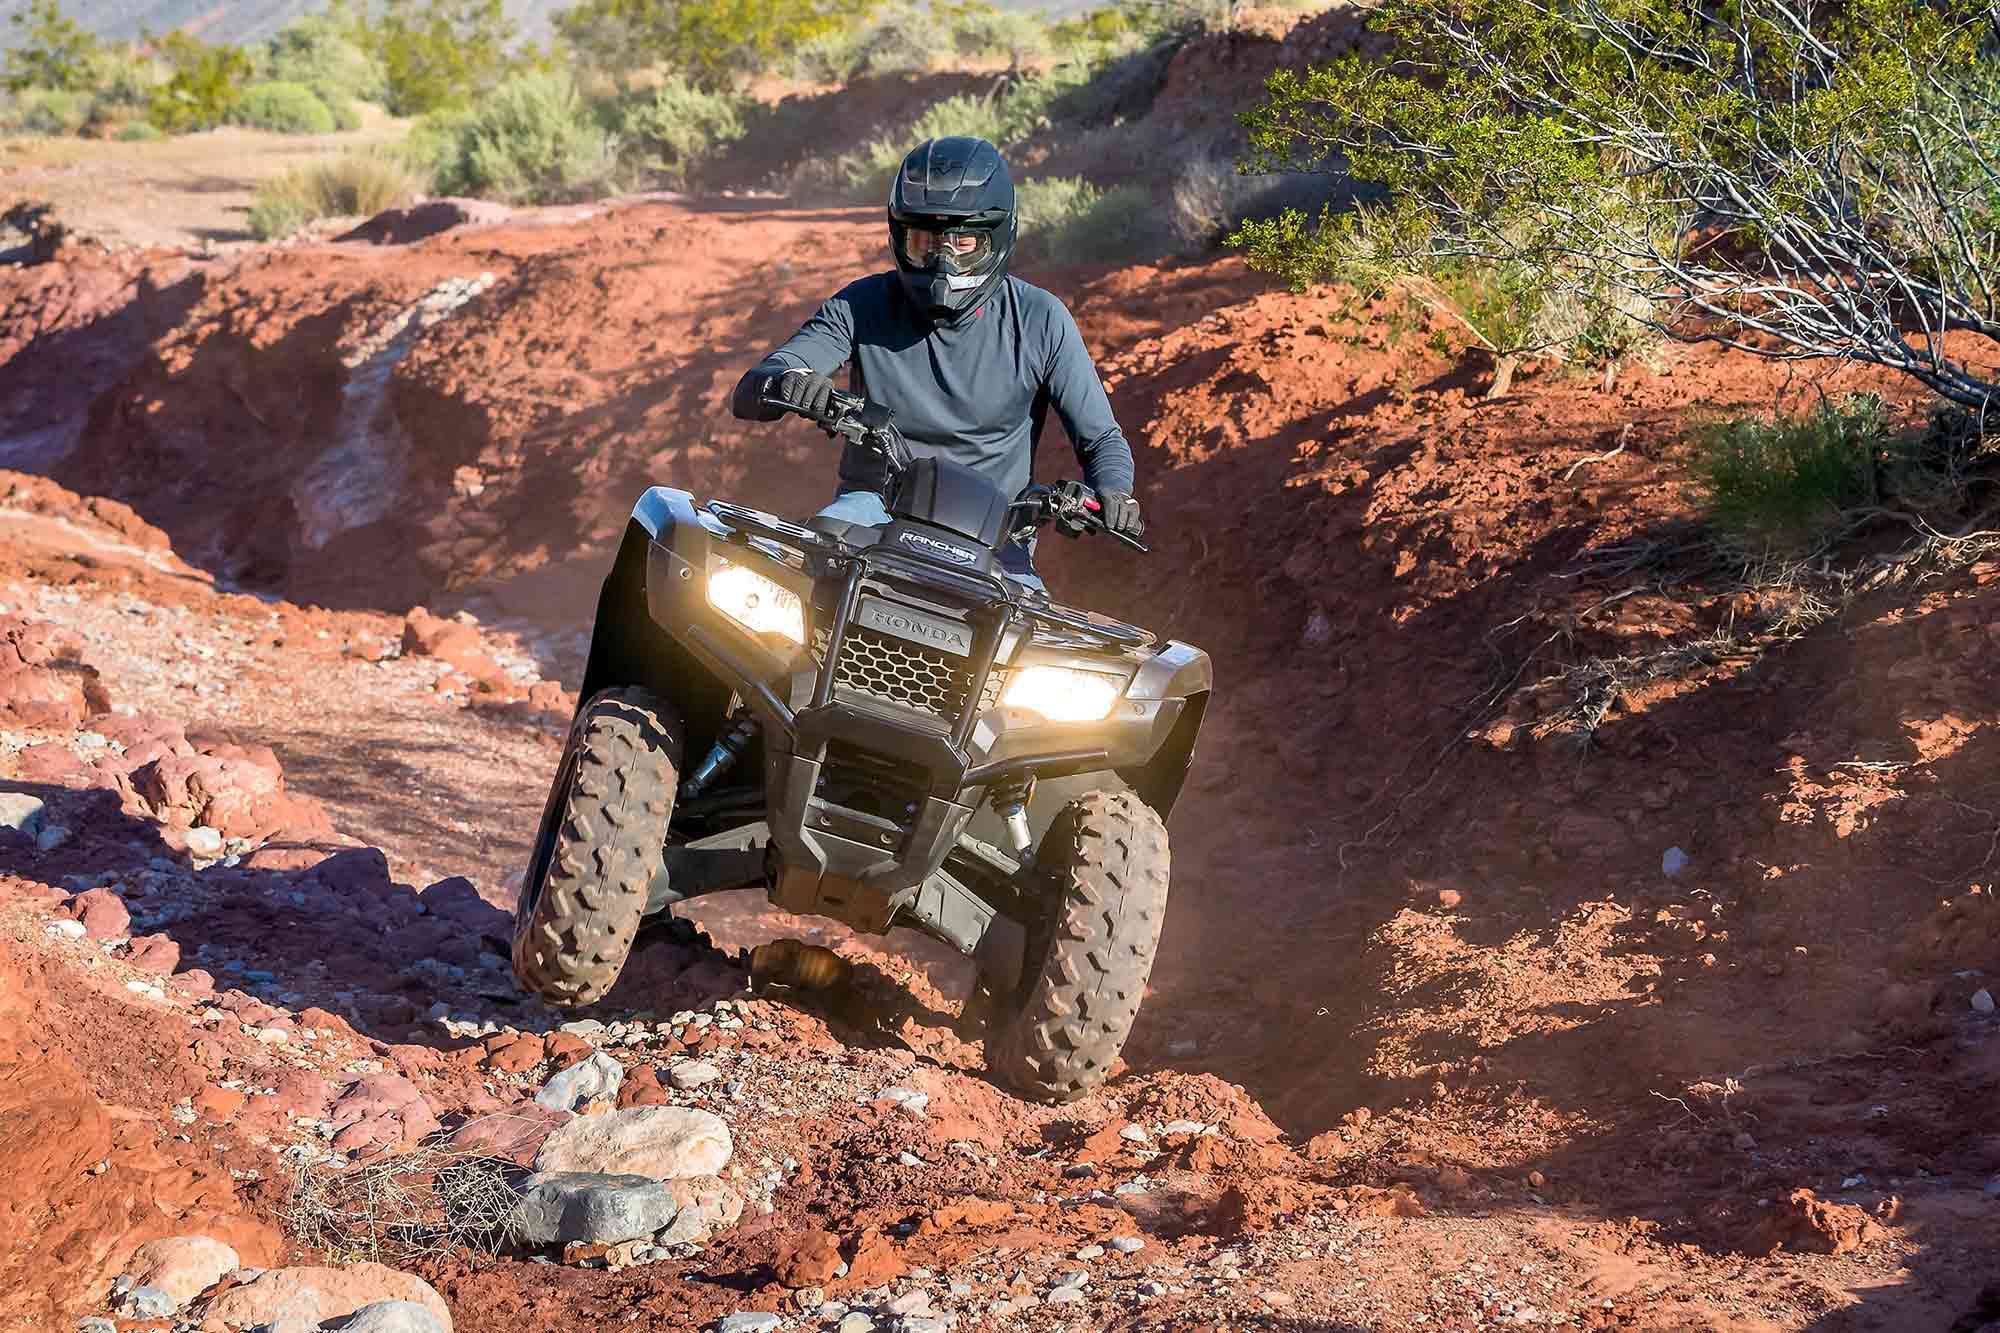 More info on new 2022 Honda ATVs just dropped. Read on to find out what we know so far.